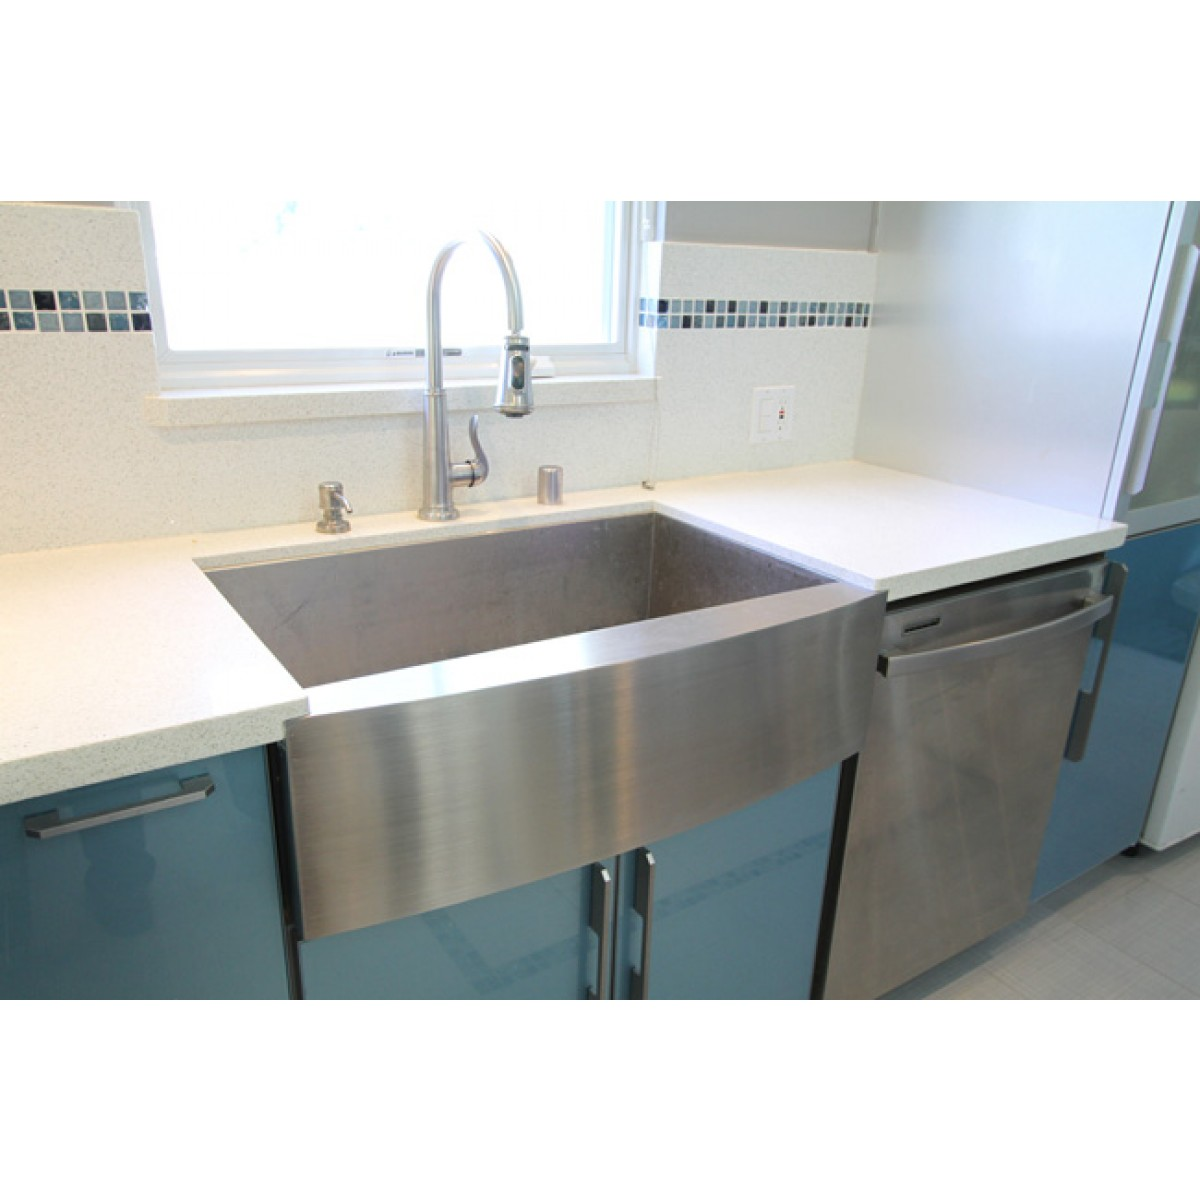 30 inch kitchen sink aid attachments stainless steel single bowl curved front farm